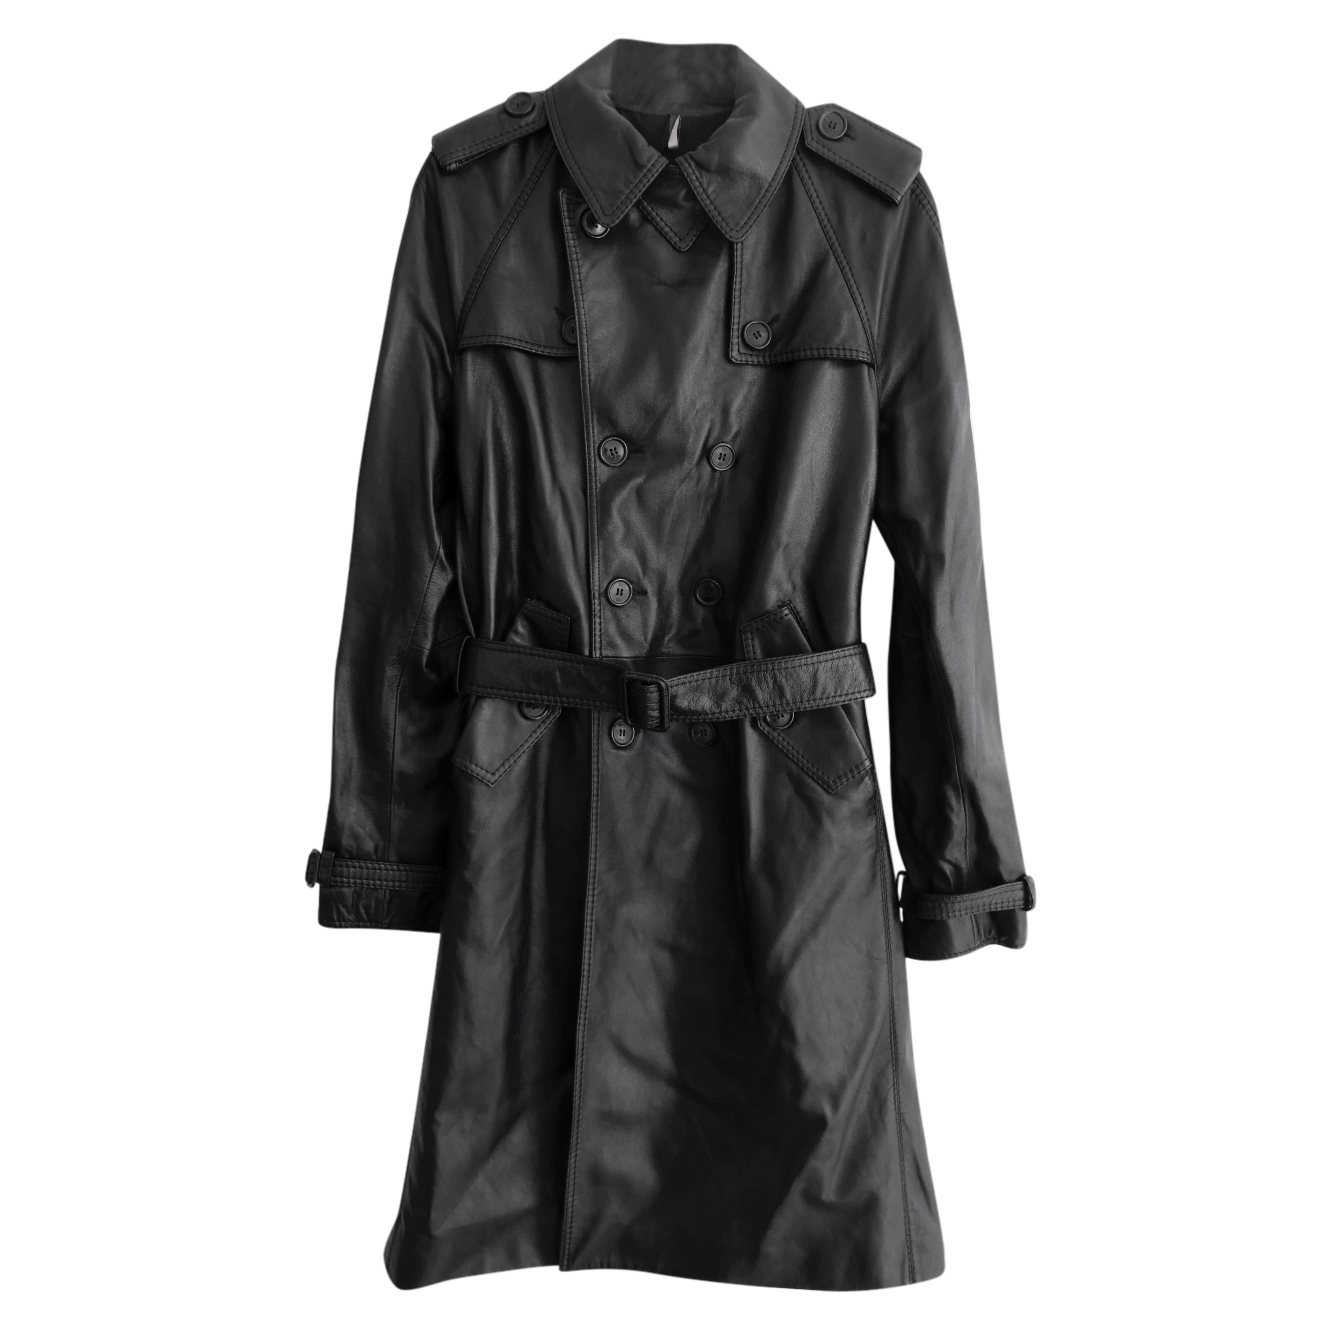 Dior Homme Hedi Slimane AW05 Black Leather Trench Coat New w/Cover